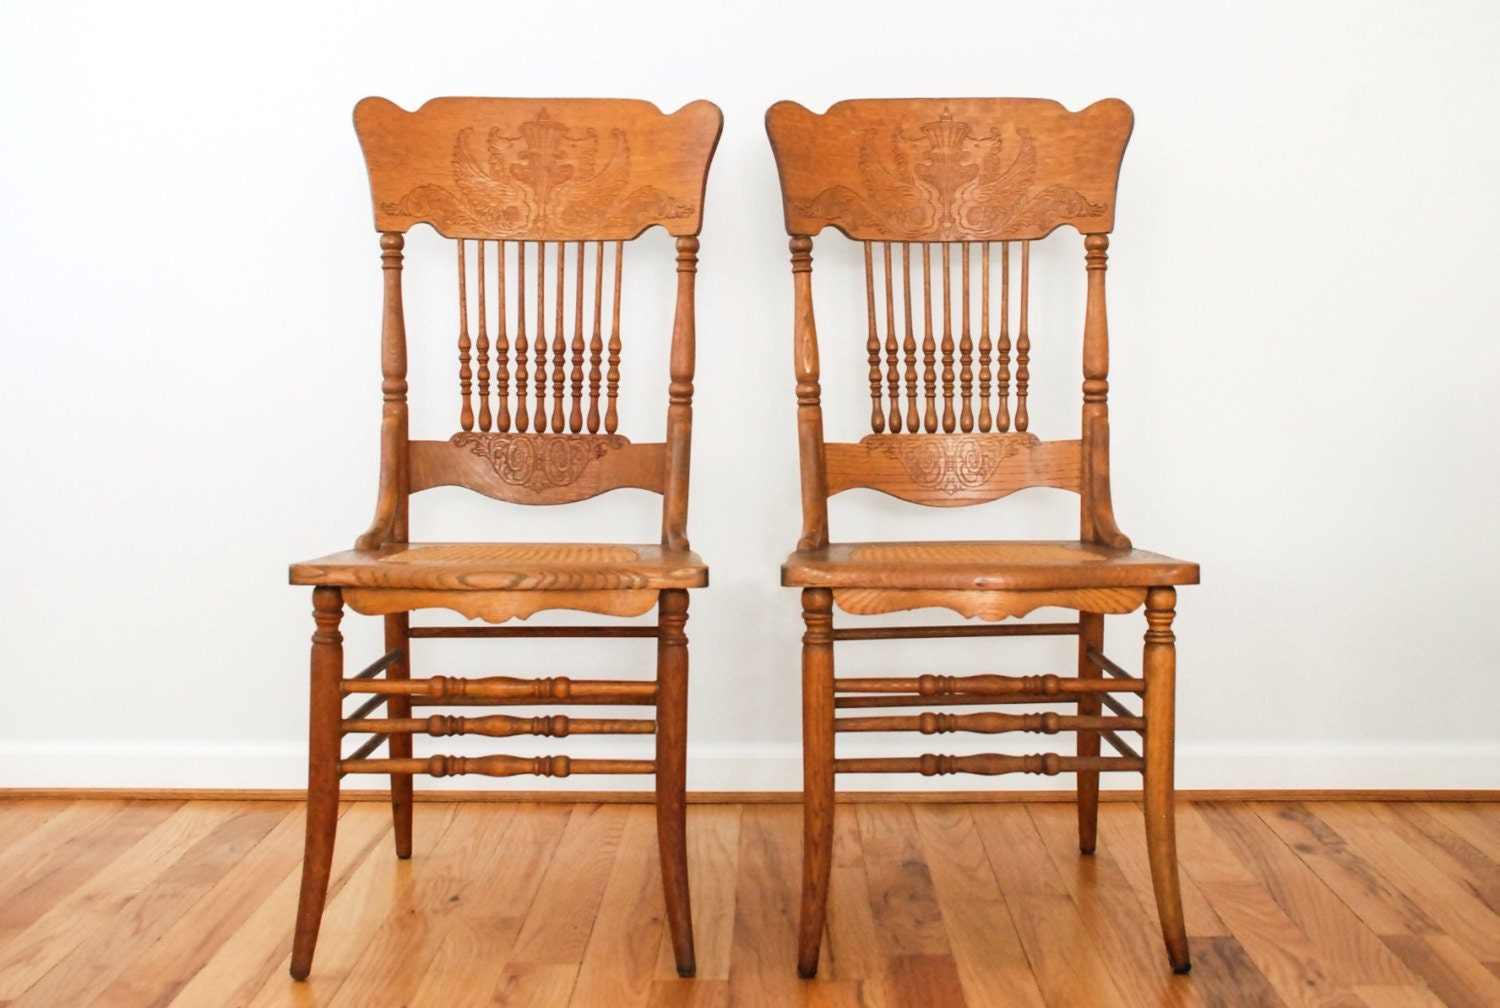 Antique Wooden Chairs ~ Antique wood chairs dining cane